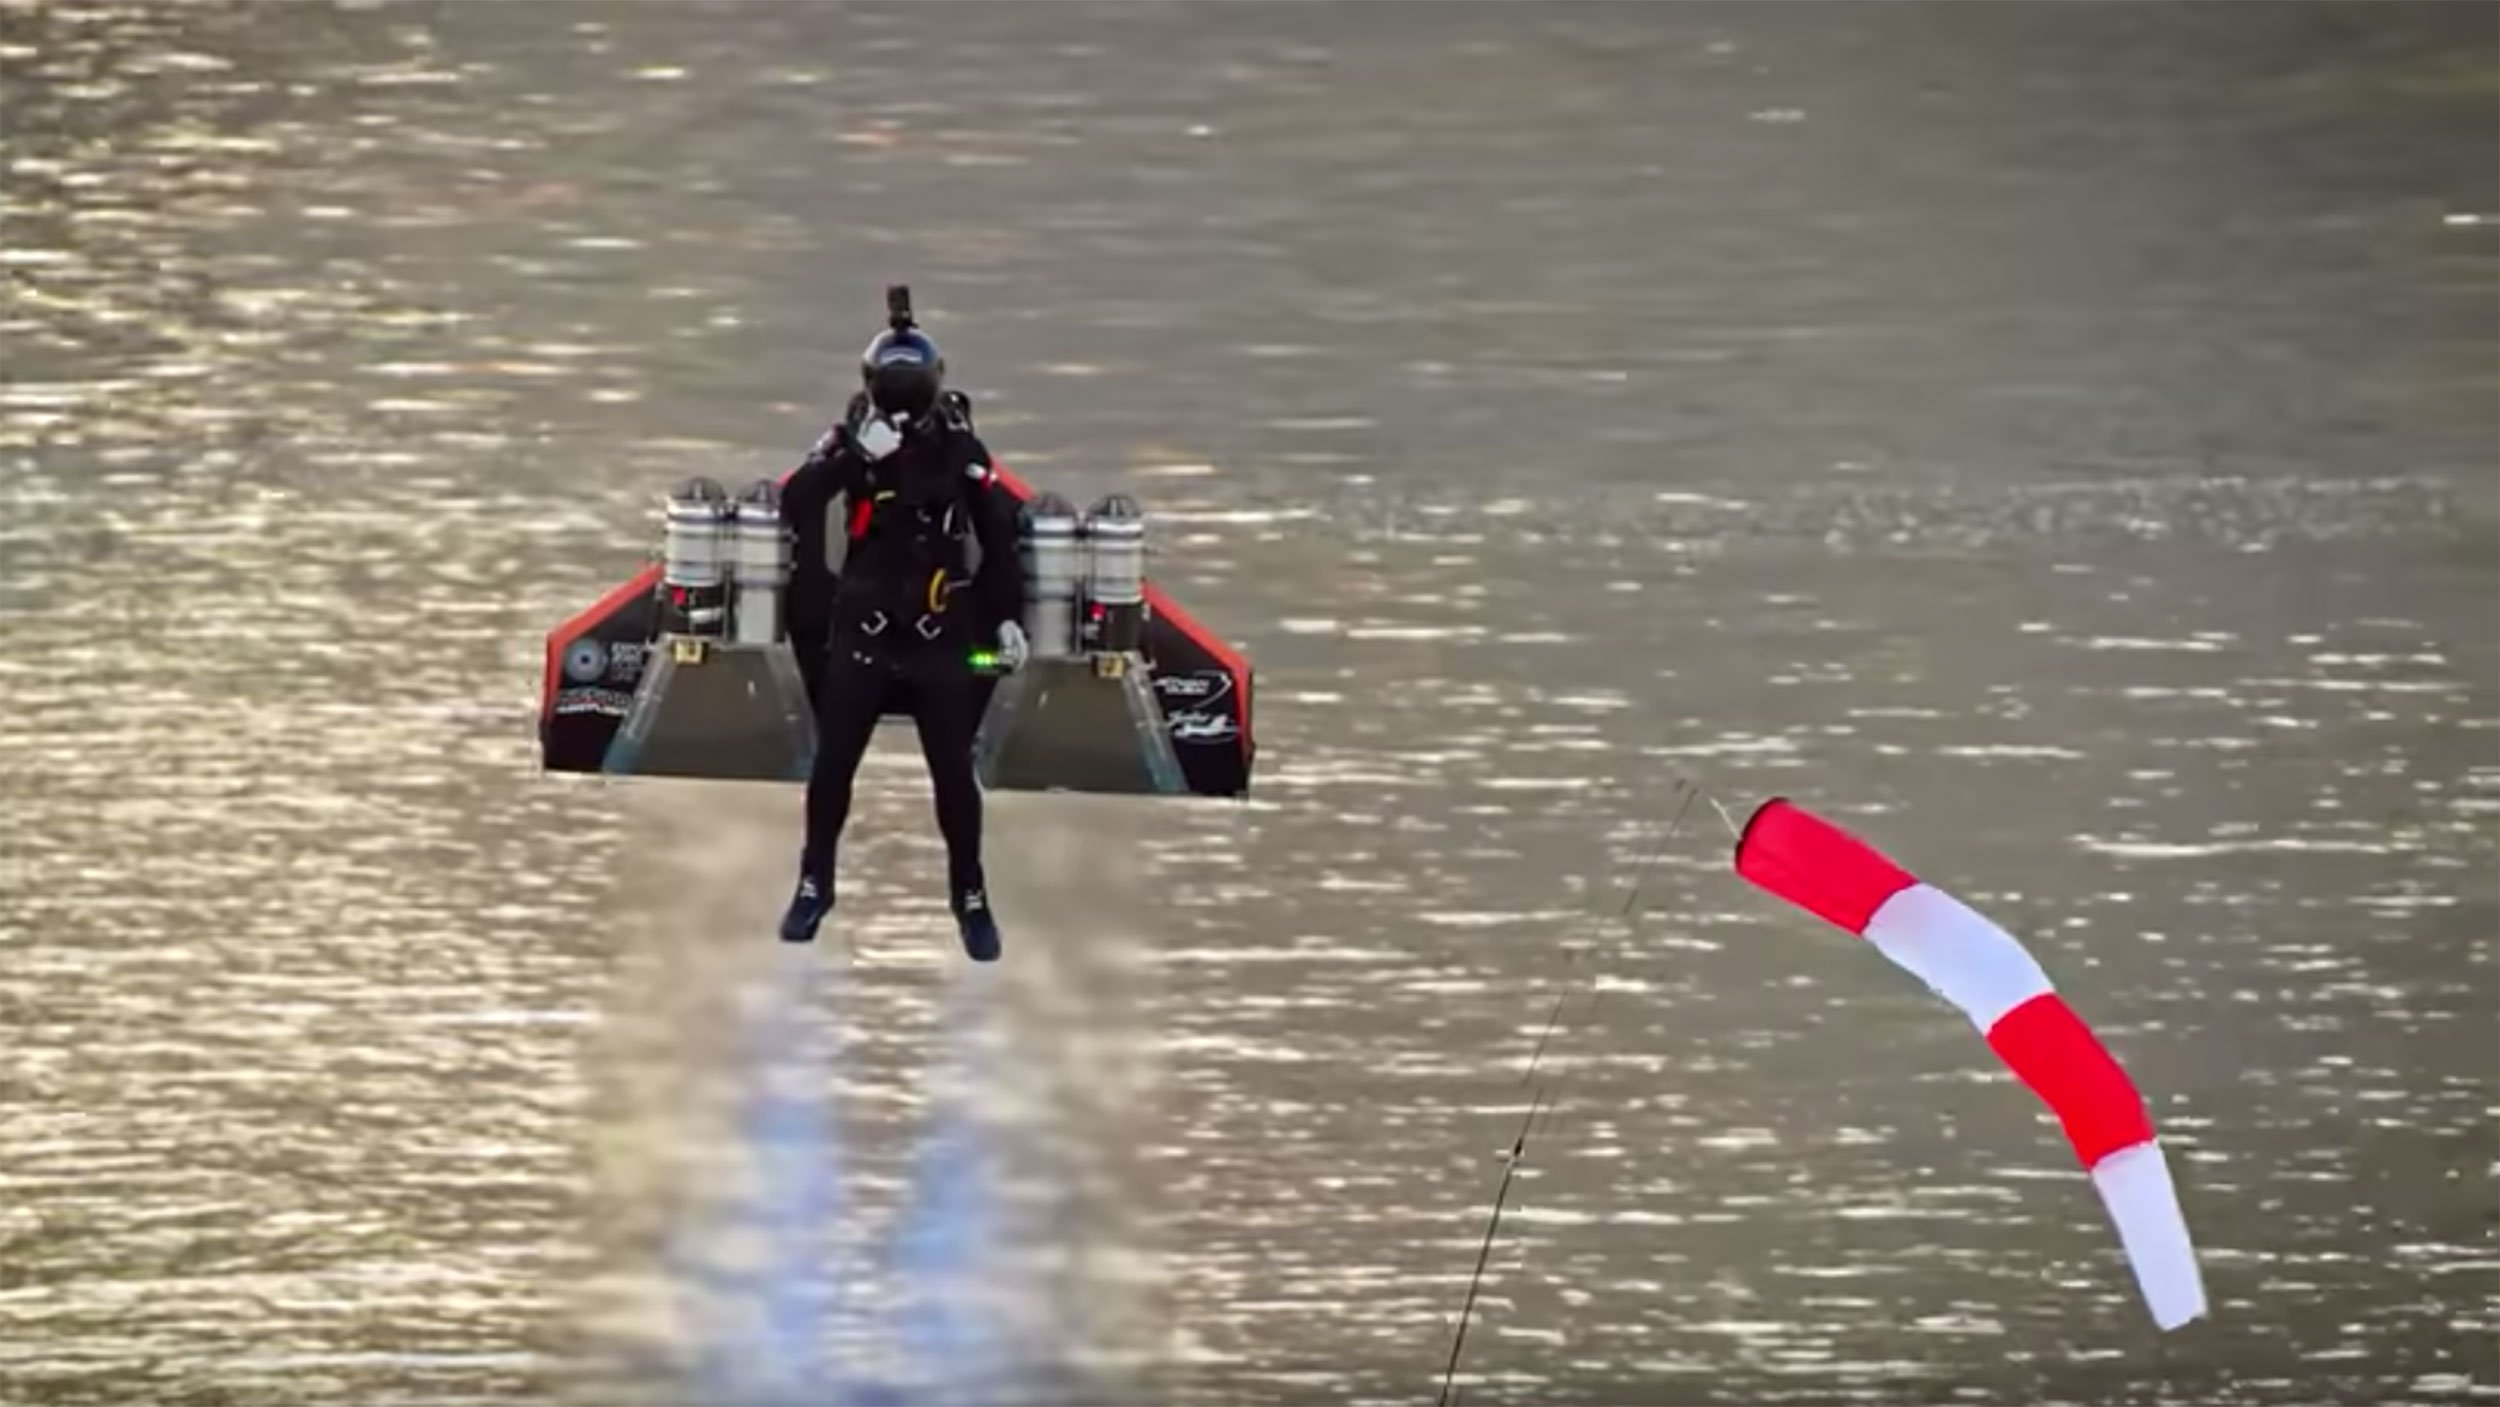 Jet-powered wingsuit